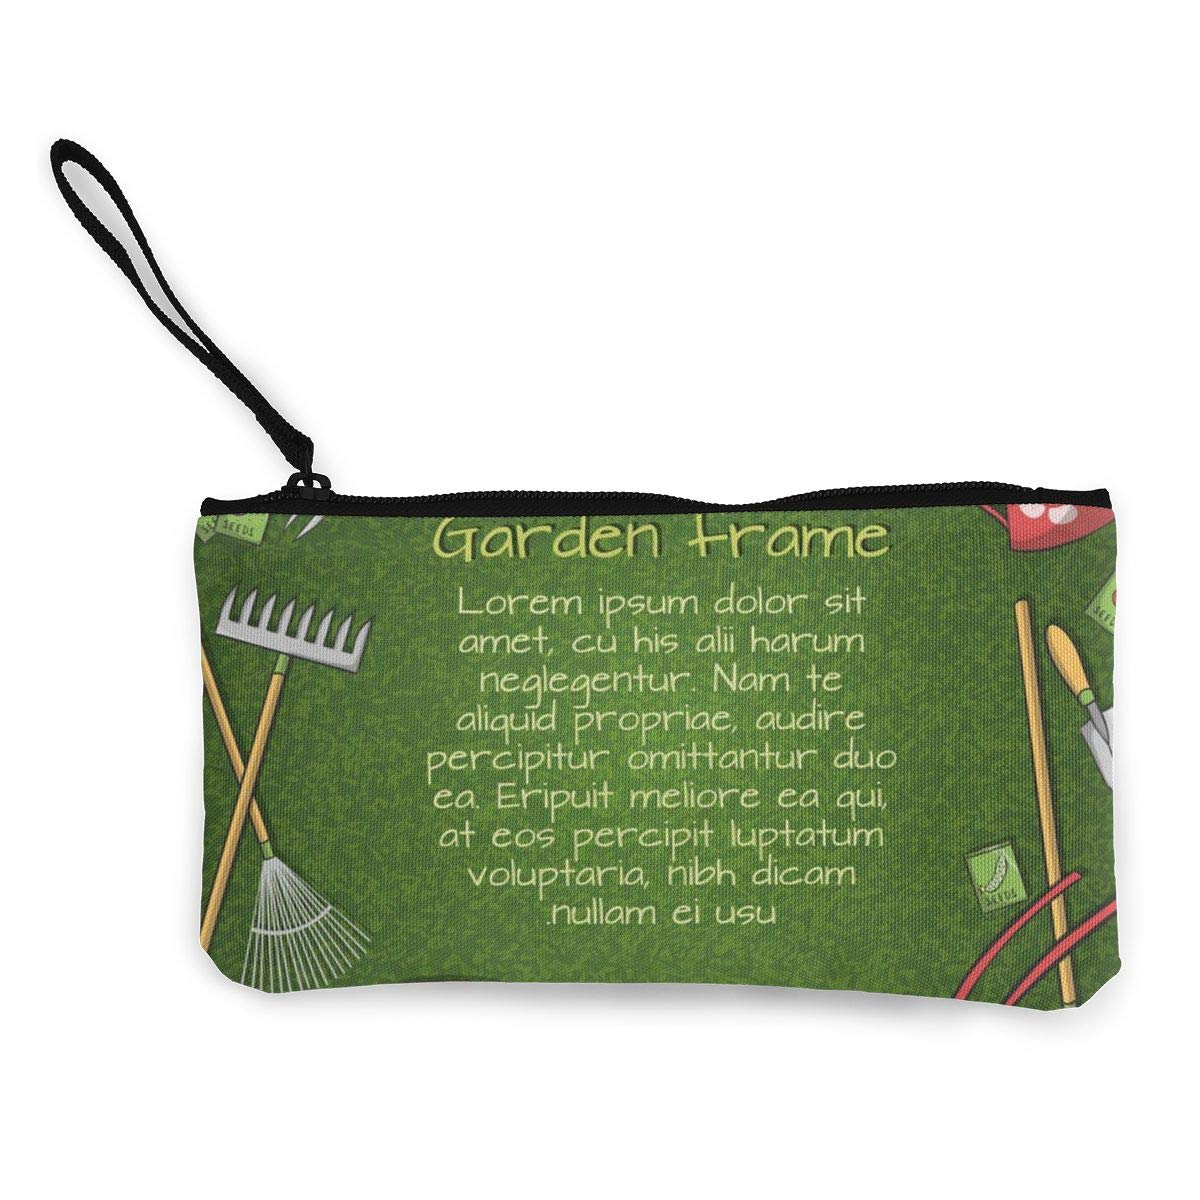 Yamini Garden Tools Frame Cute Looking Coin Purse Small and Exquisite Going Out to Carry Purse